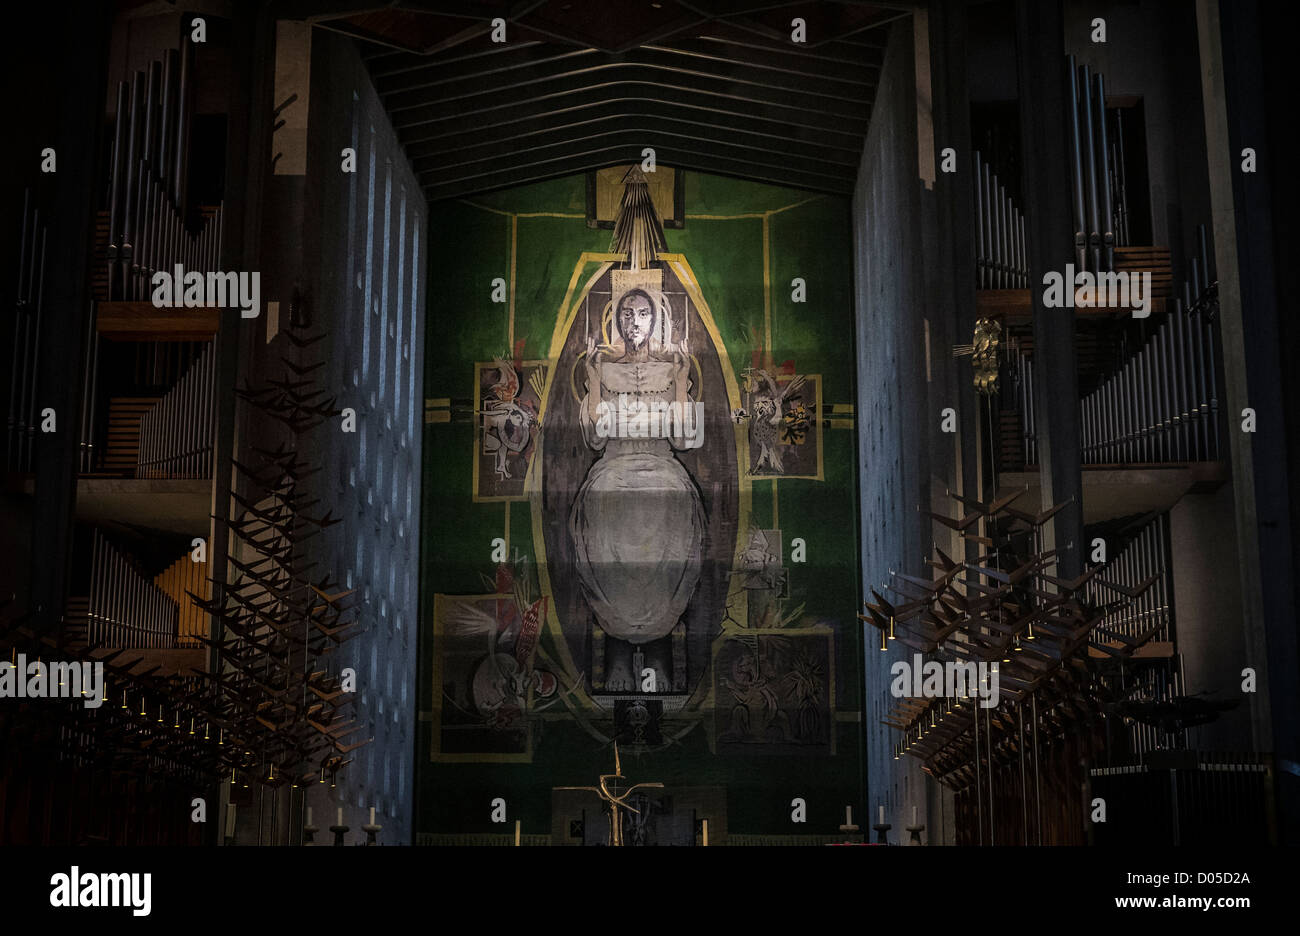 Part of the Graham Sutherland Tapestry in Coventry Cathedral, West Midlands, UK. - Stock Image